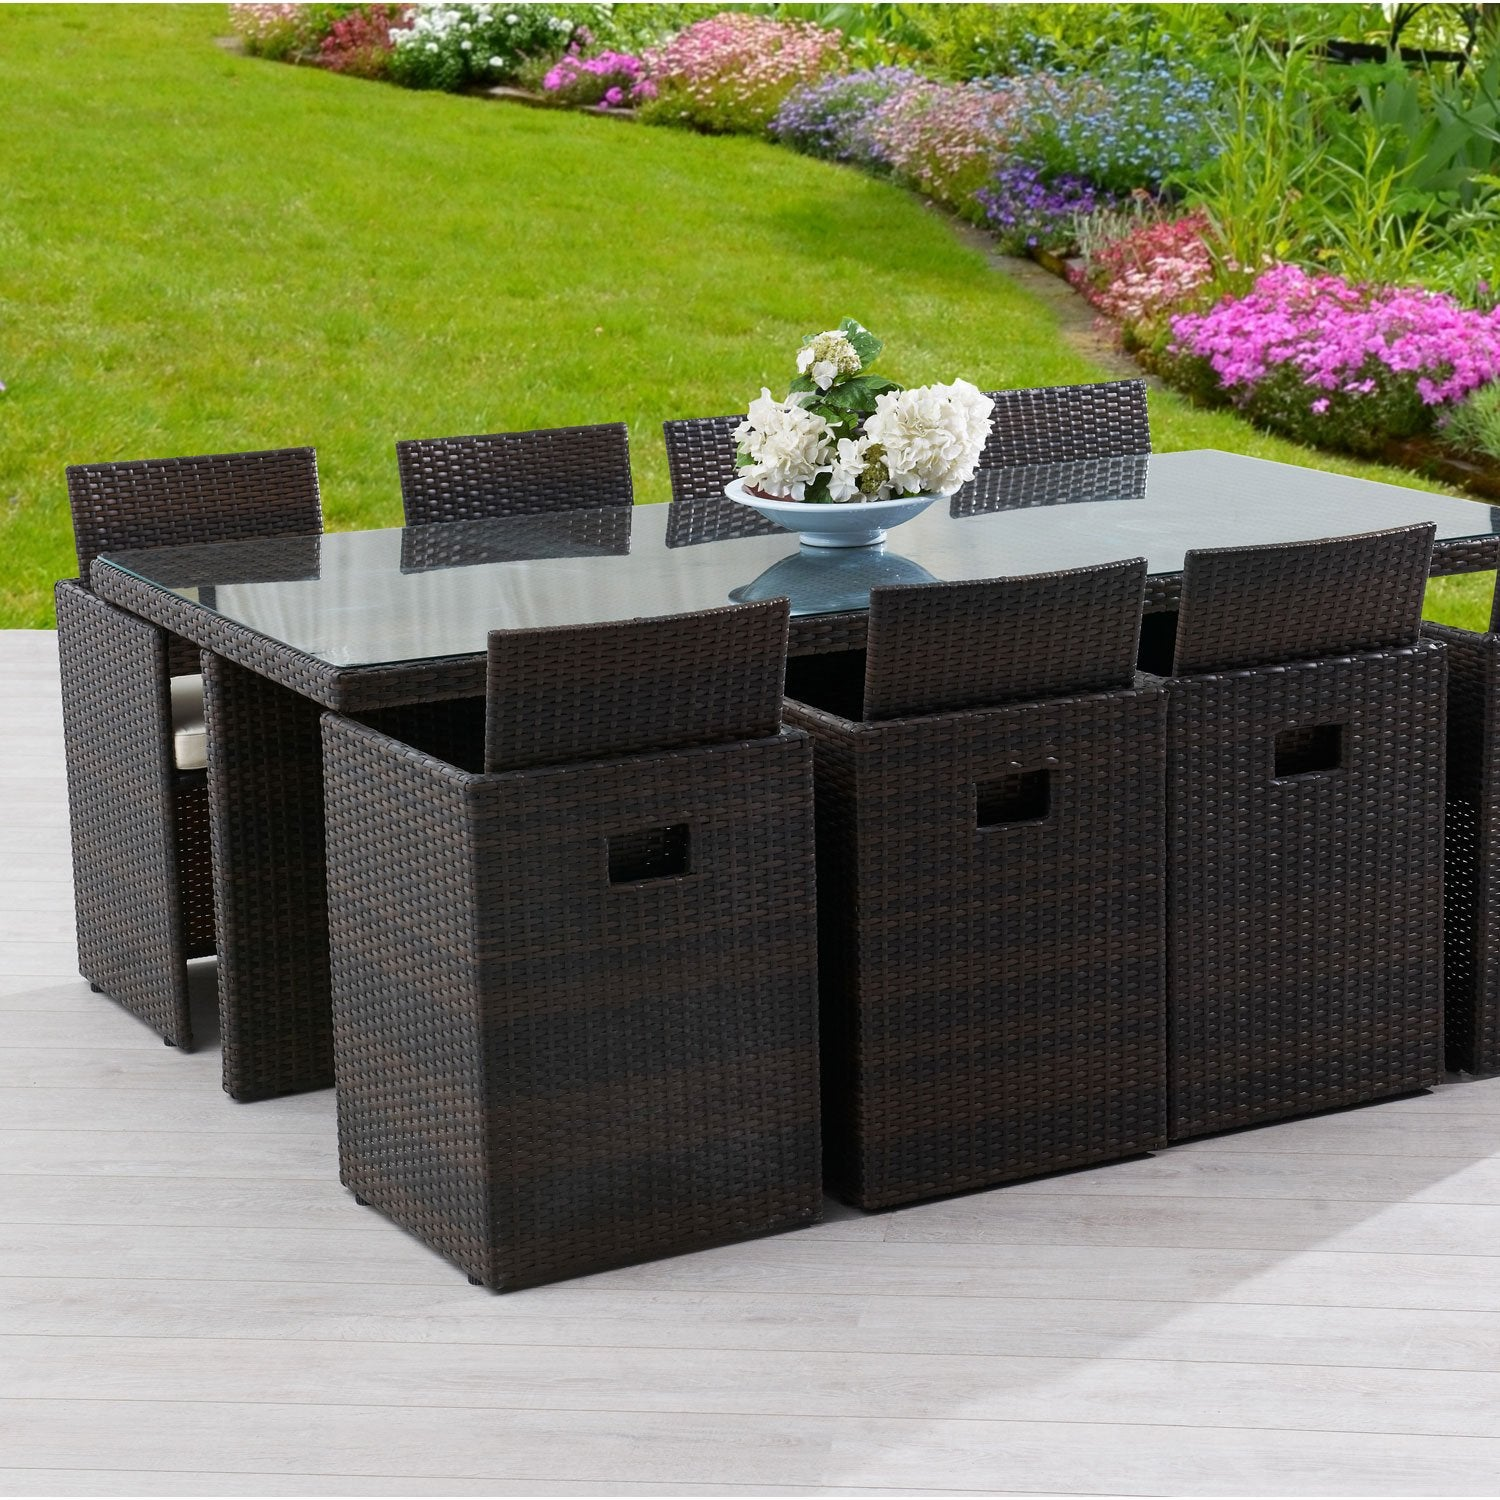 Salon de jardin encastrable r sine tress e marron 1 table for Salons de jardins